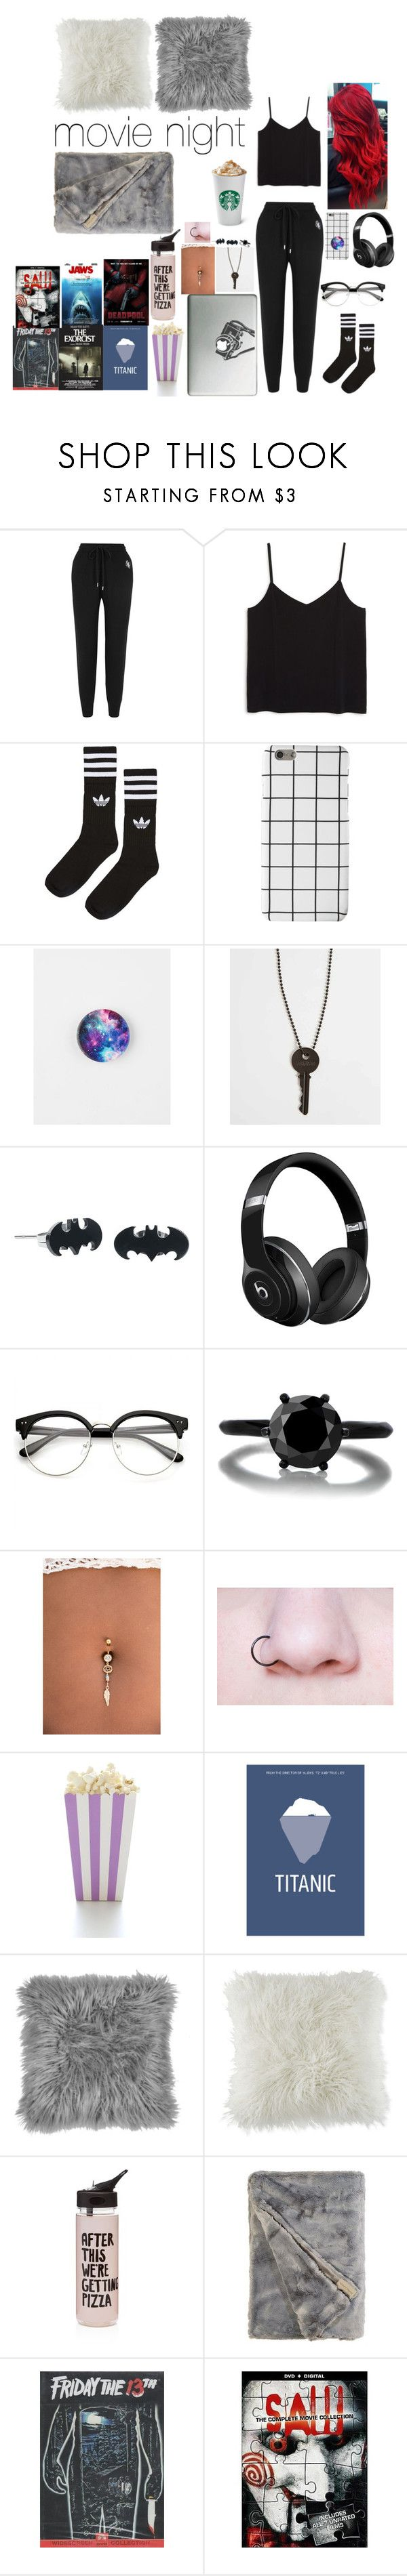 """Movie night"" by carry-senpai ❤ liked on Polyvore featuring Markus Lupfer, Monki, adidas, PopSockets, The Giving Keys, Beats by Dr. Dre, Marvel, BCBGeneration and ban.do"